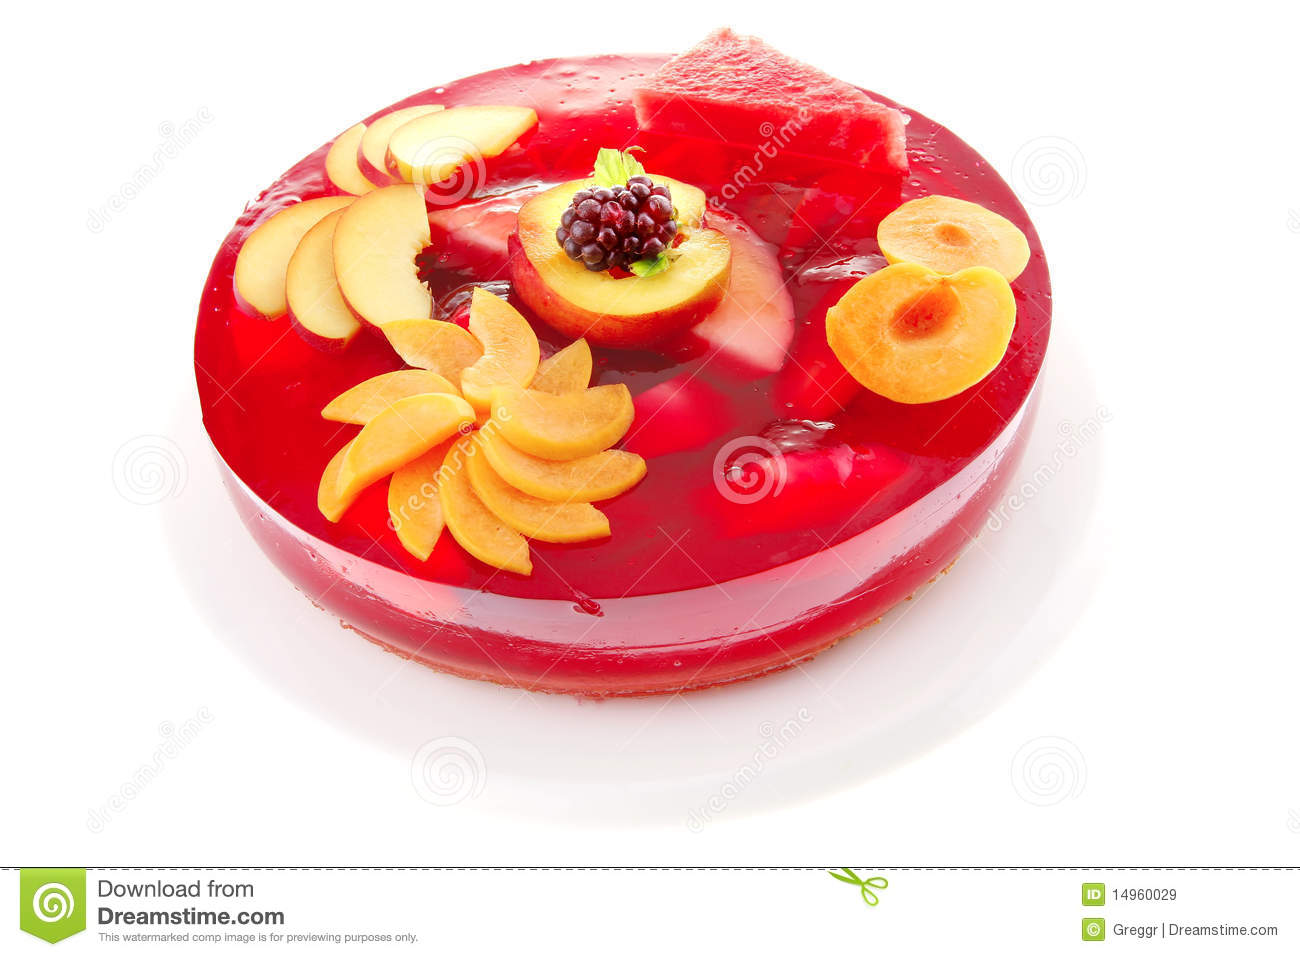 Red Jelly Cake Recipe: Fruits Jelly Cake And Nectarine Royalty Free Stock Images